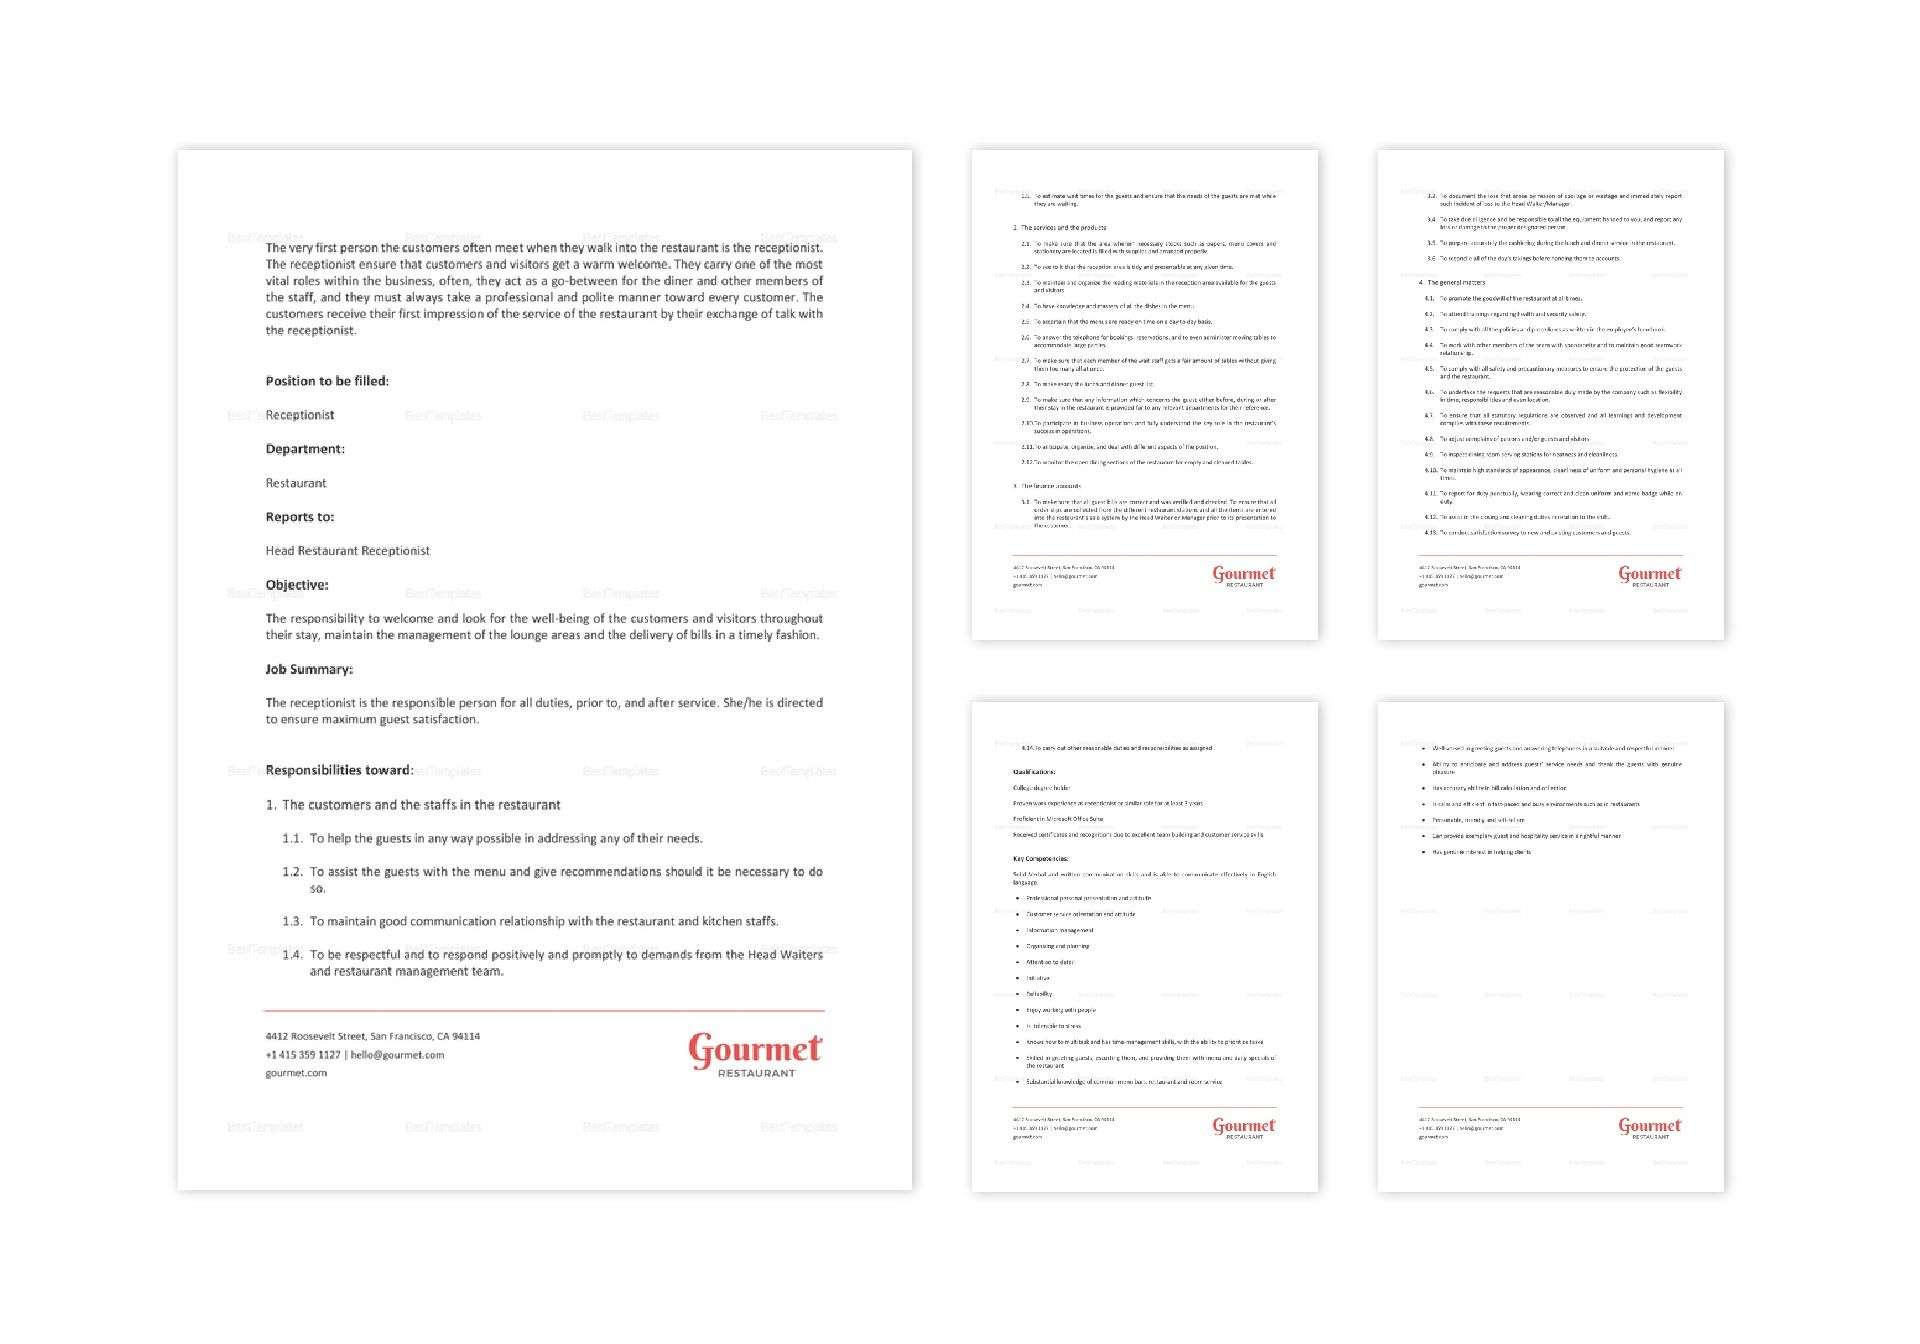 Restaurant Receptionist Job Description Template in Word